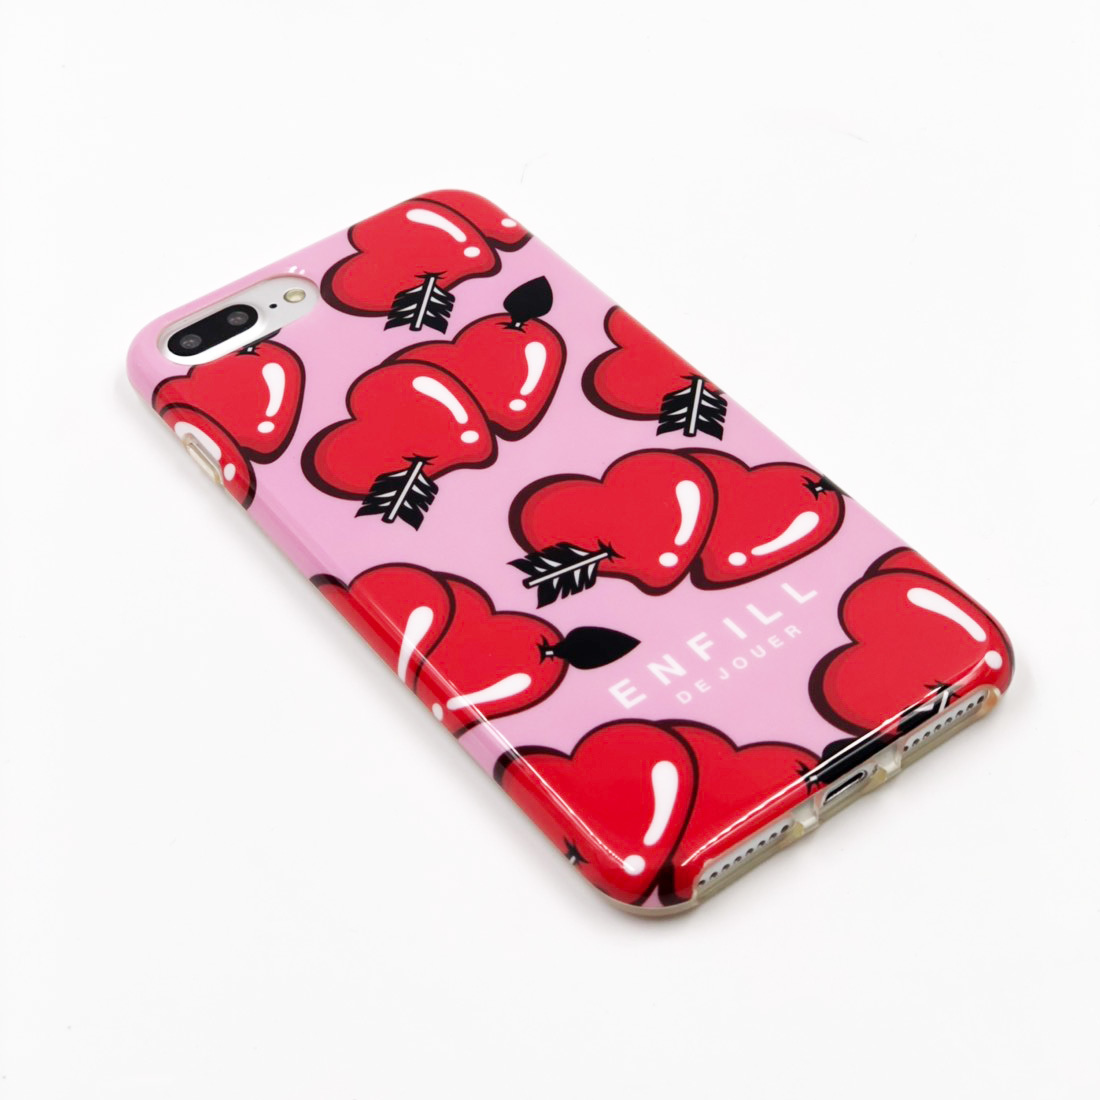 "TPU CASE ""LOVE EACH OTHER"" for iPhone8/7/6s/6 Plusケース"